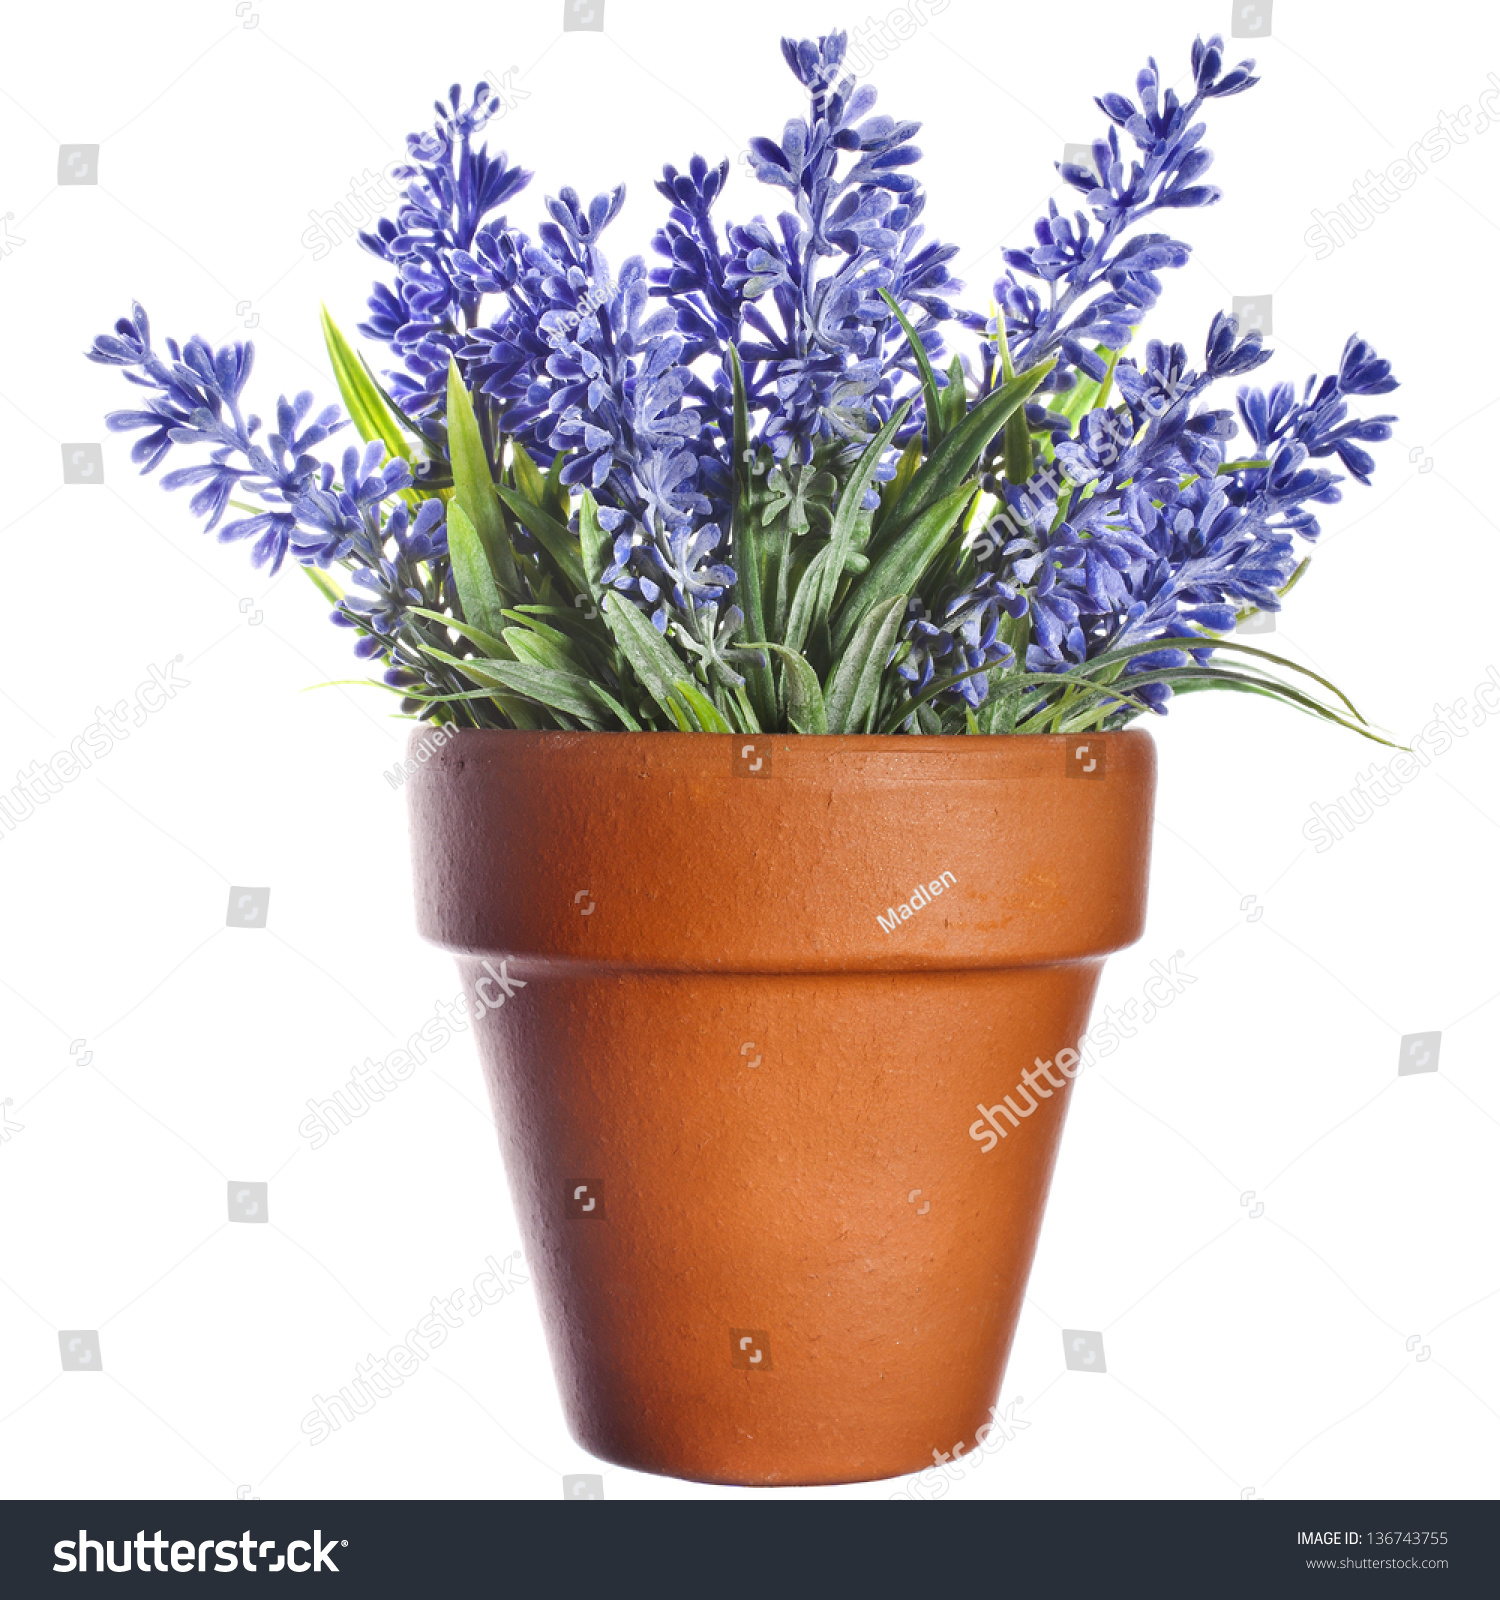 Lavender plant pottery clay terracotta pot stock photo 136743755 shutterstock - Growing lavender pot ...